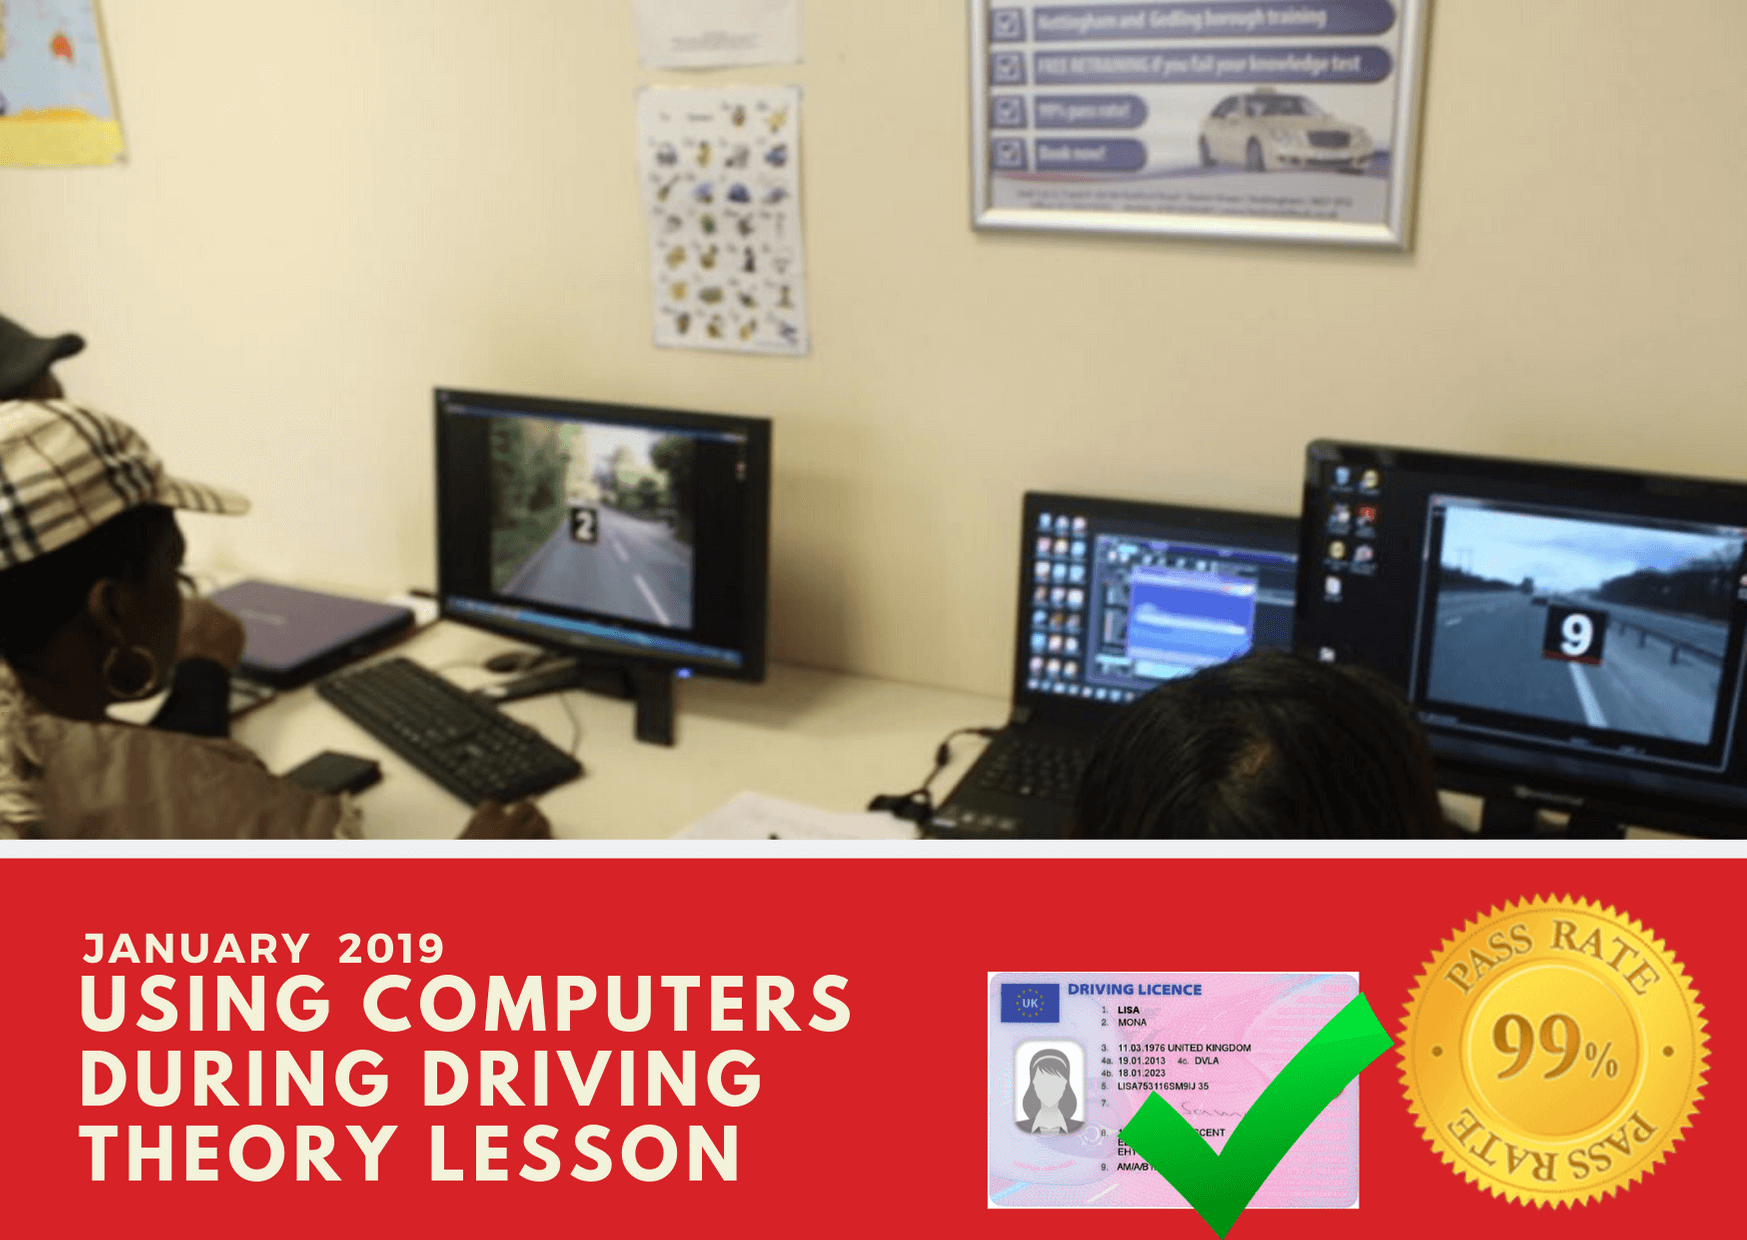 Our driving theory test lessons can be done online or in our classrooms